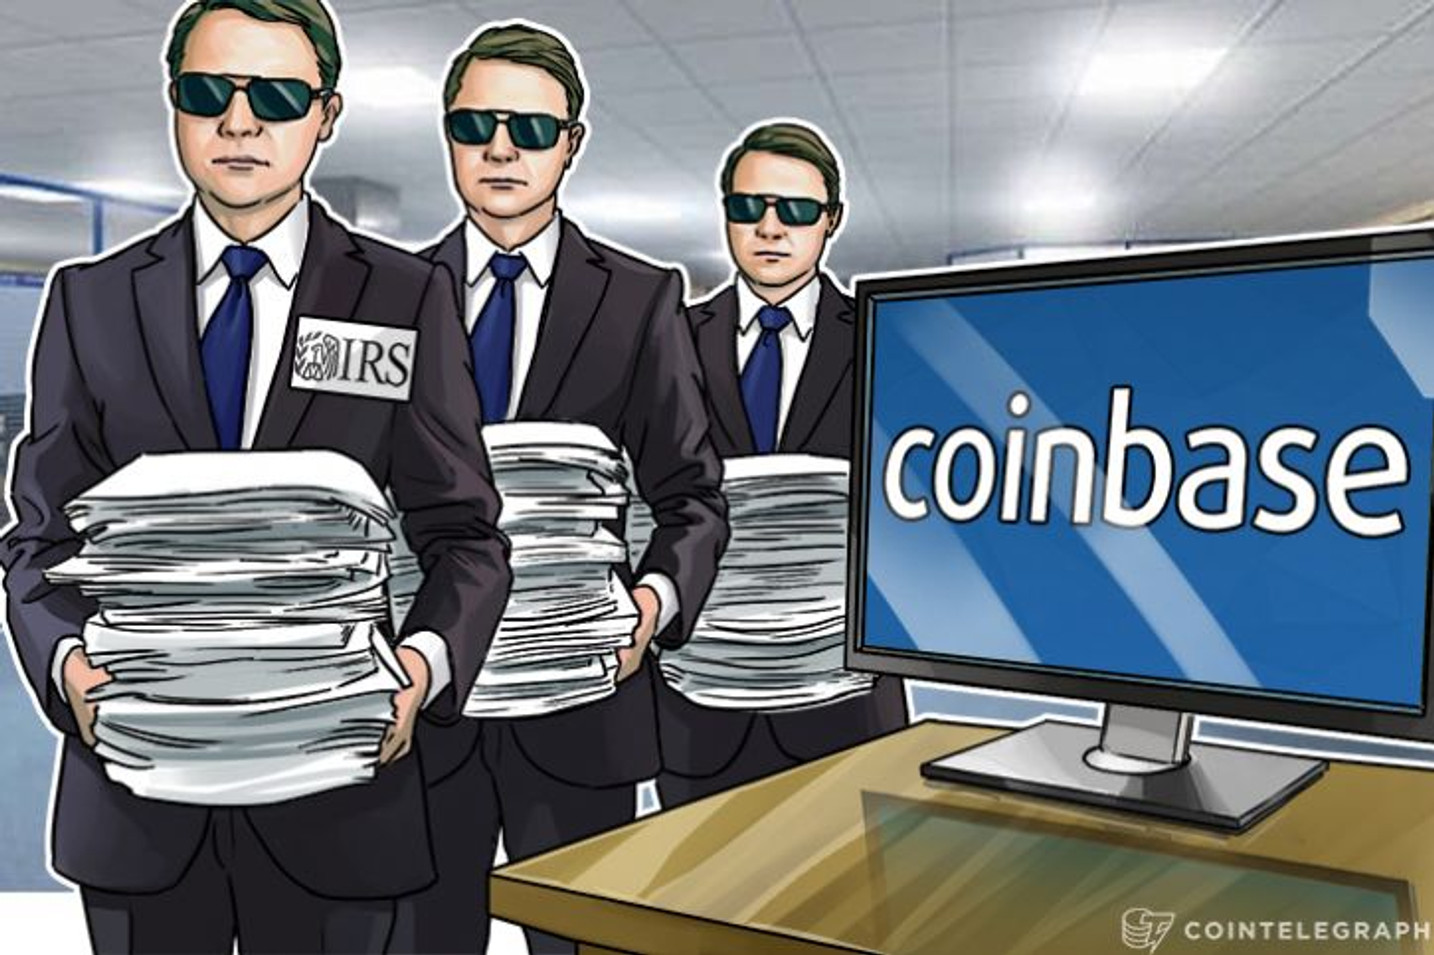 Coinbase: 'Partial Victory' Appears To Put End To 12-Month Legal Battle